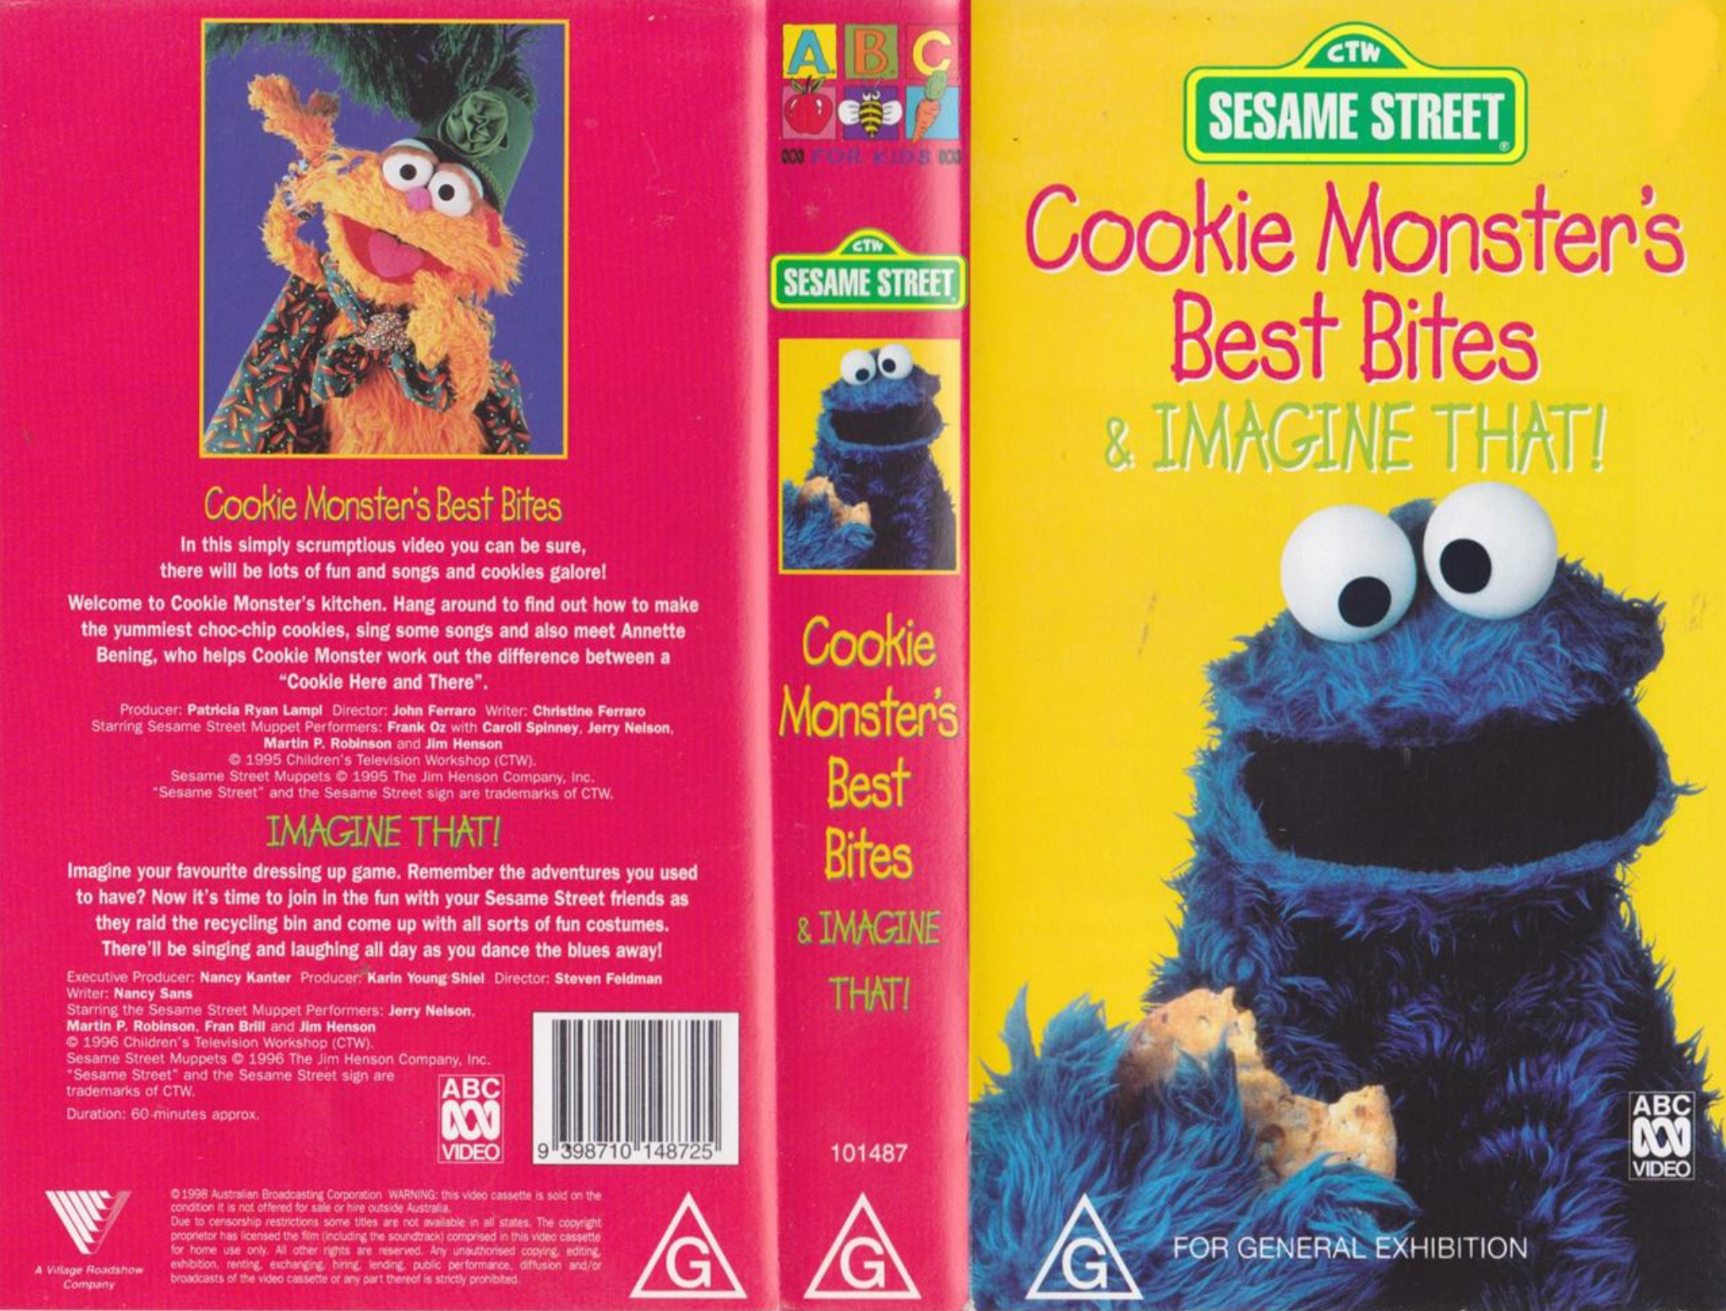 Cookie Monster's Best Bites and Imagine That/Gallery